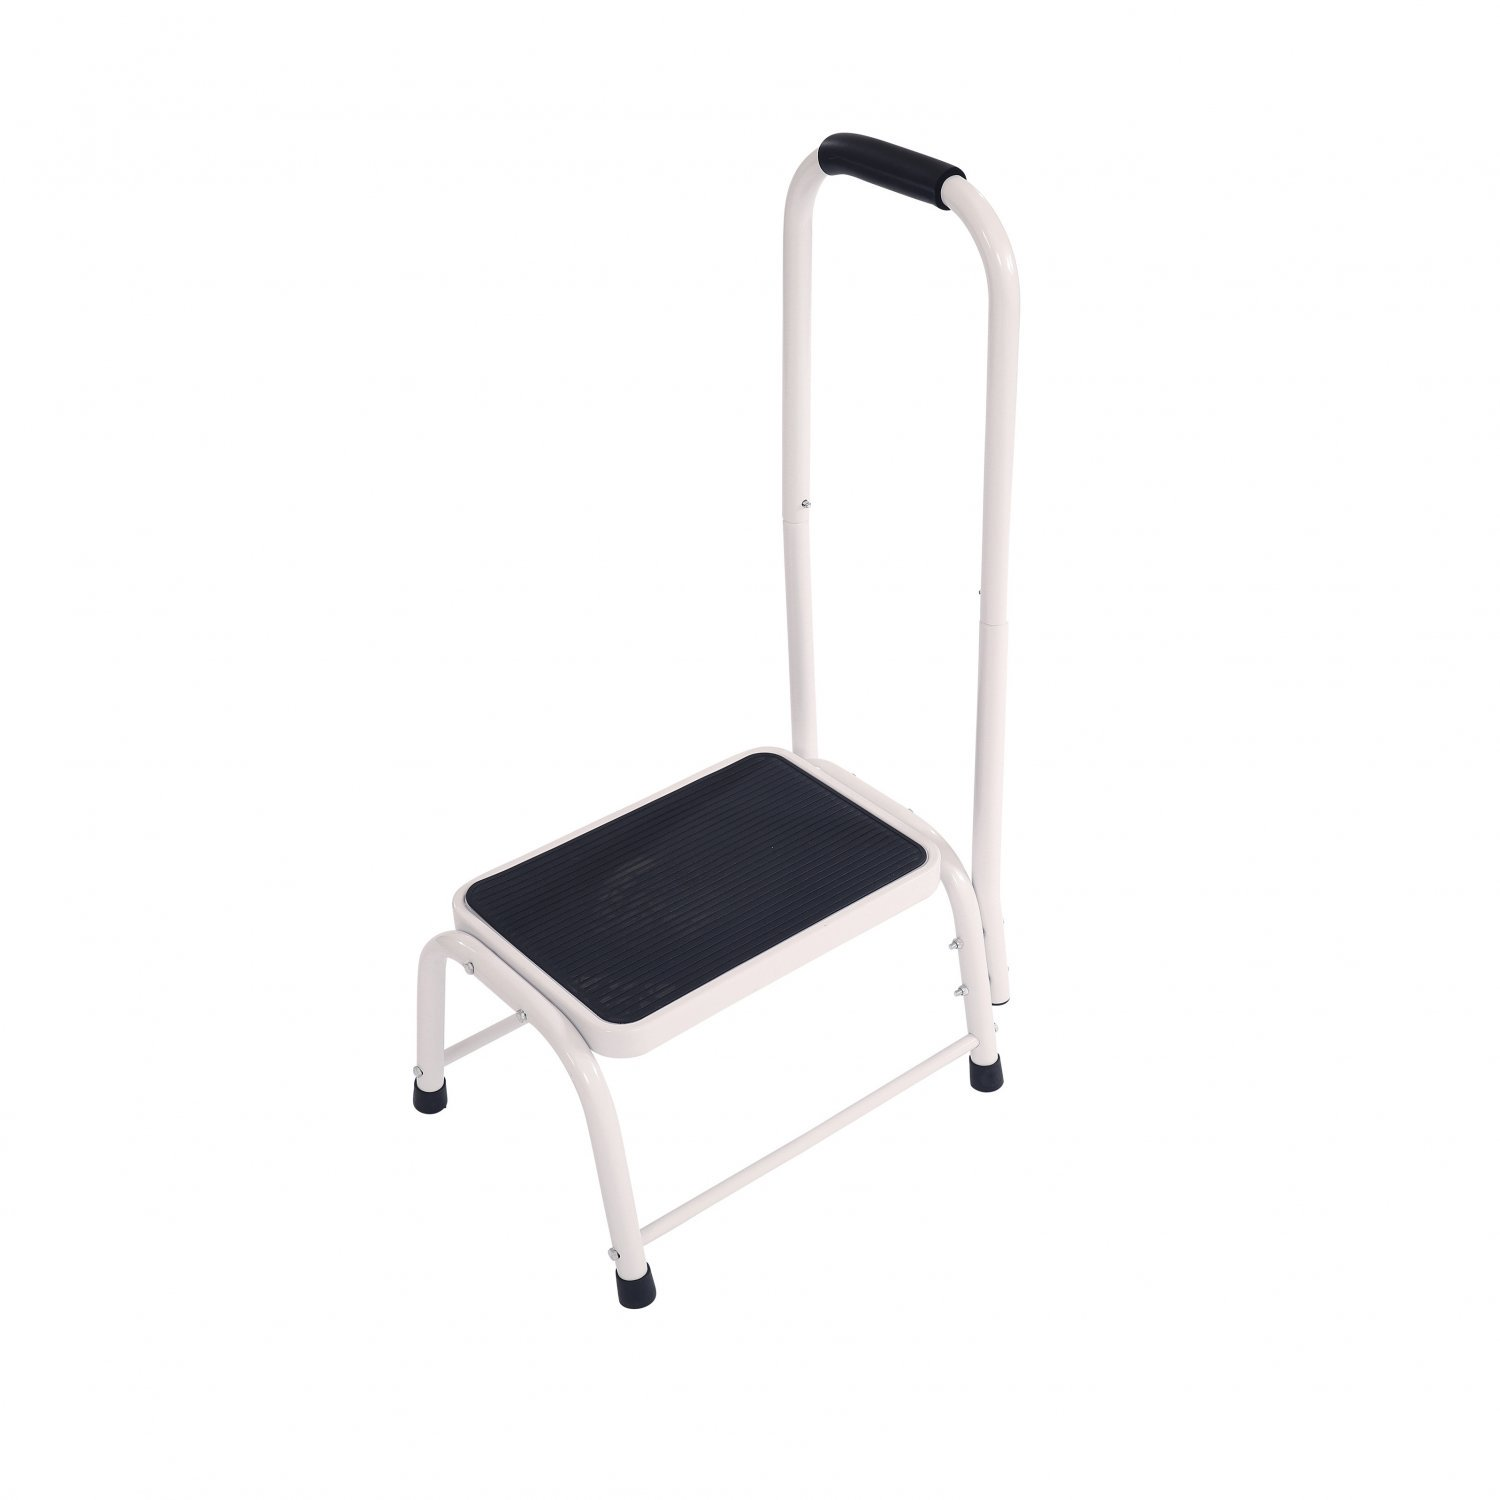 Single Caravan Step Stool Steel Non Slip Rubber Tread Safety wit